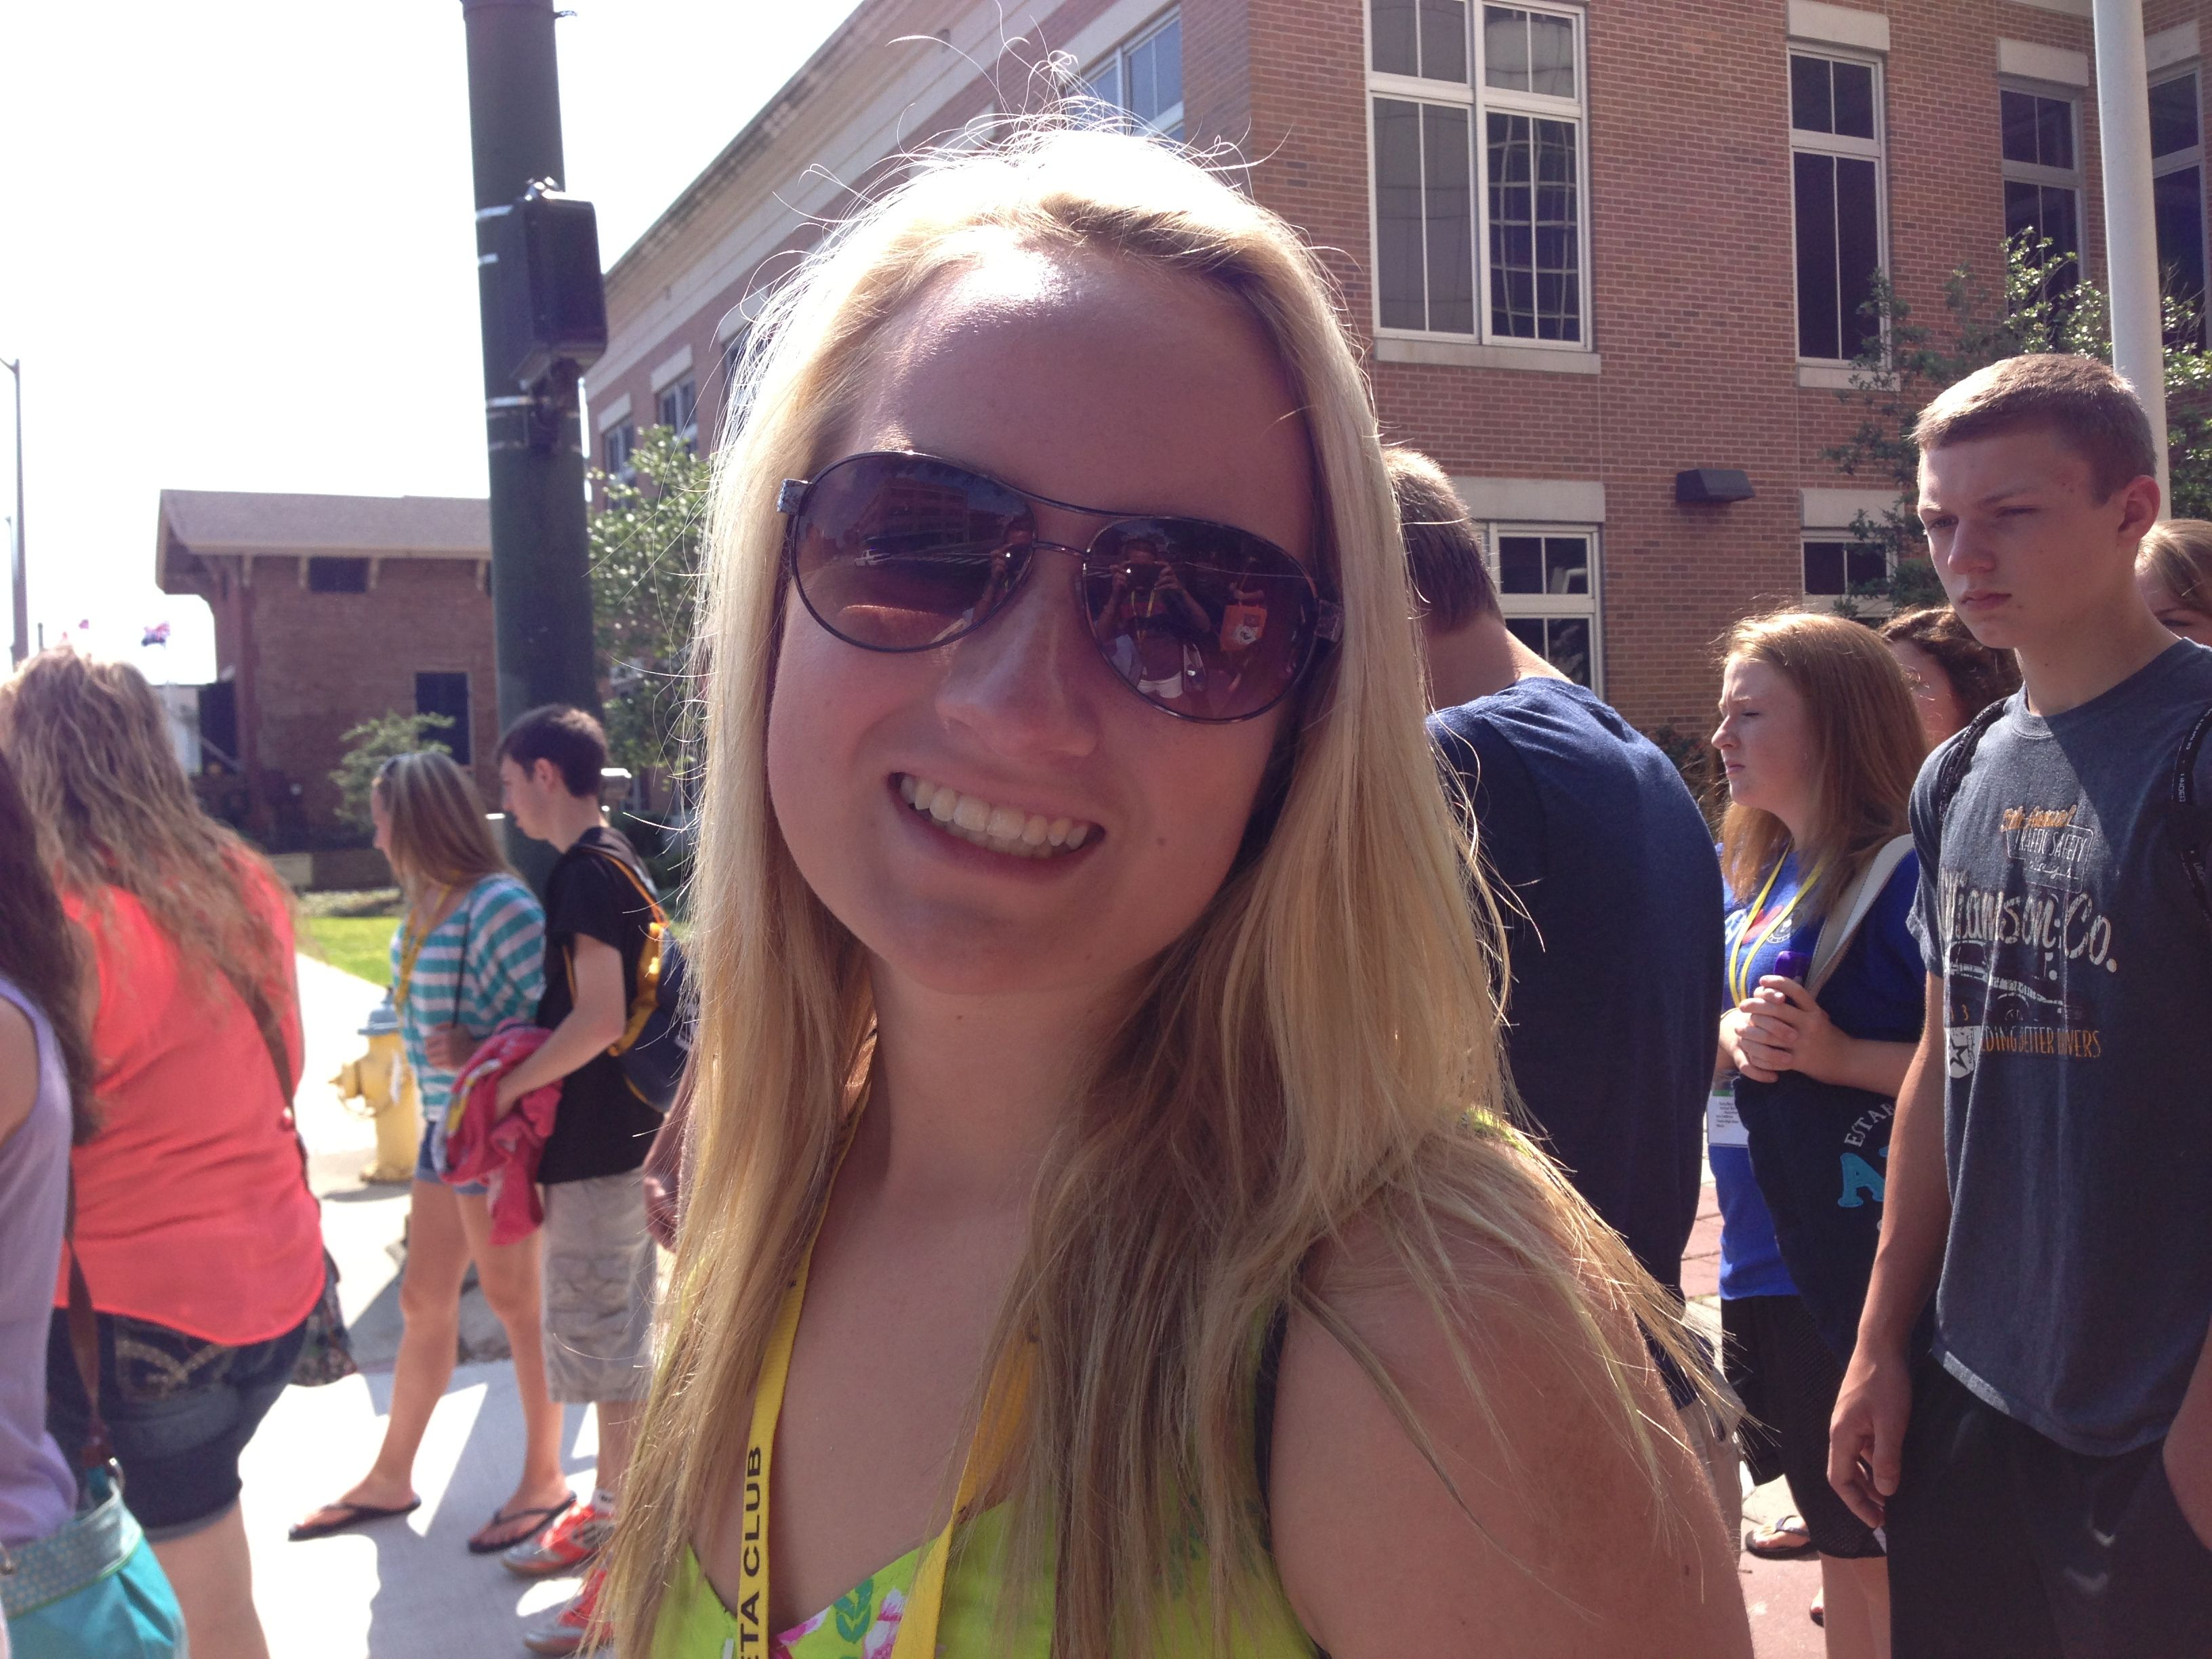 Heather Holmes of Lawrenceville, IL walks to the convention center during the National beta Convention in Mobile, AL on June 22, 2013.